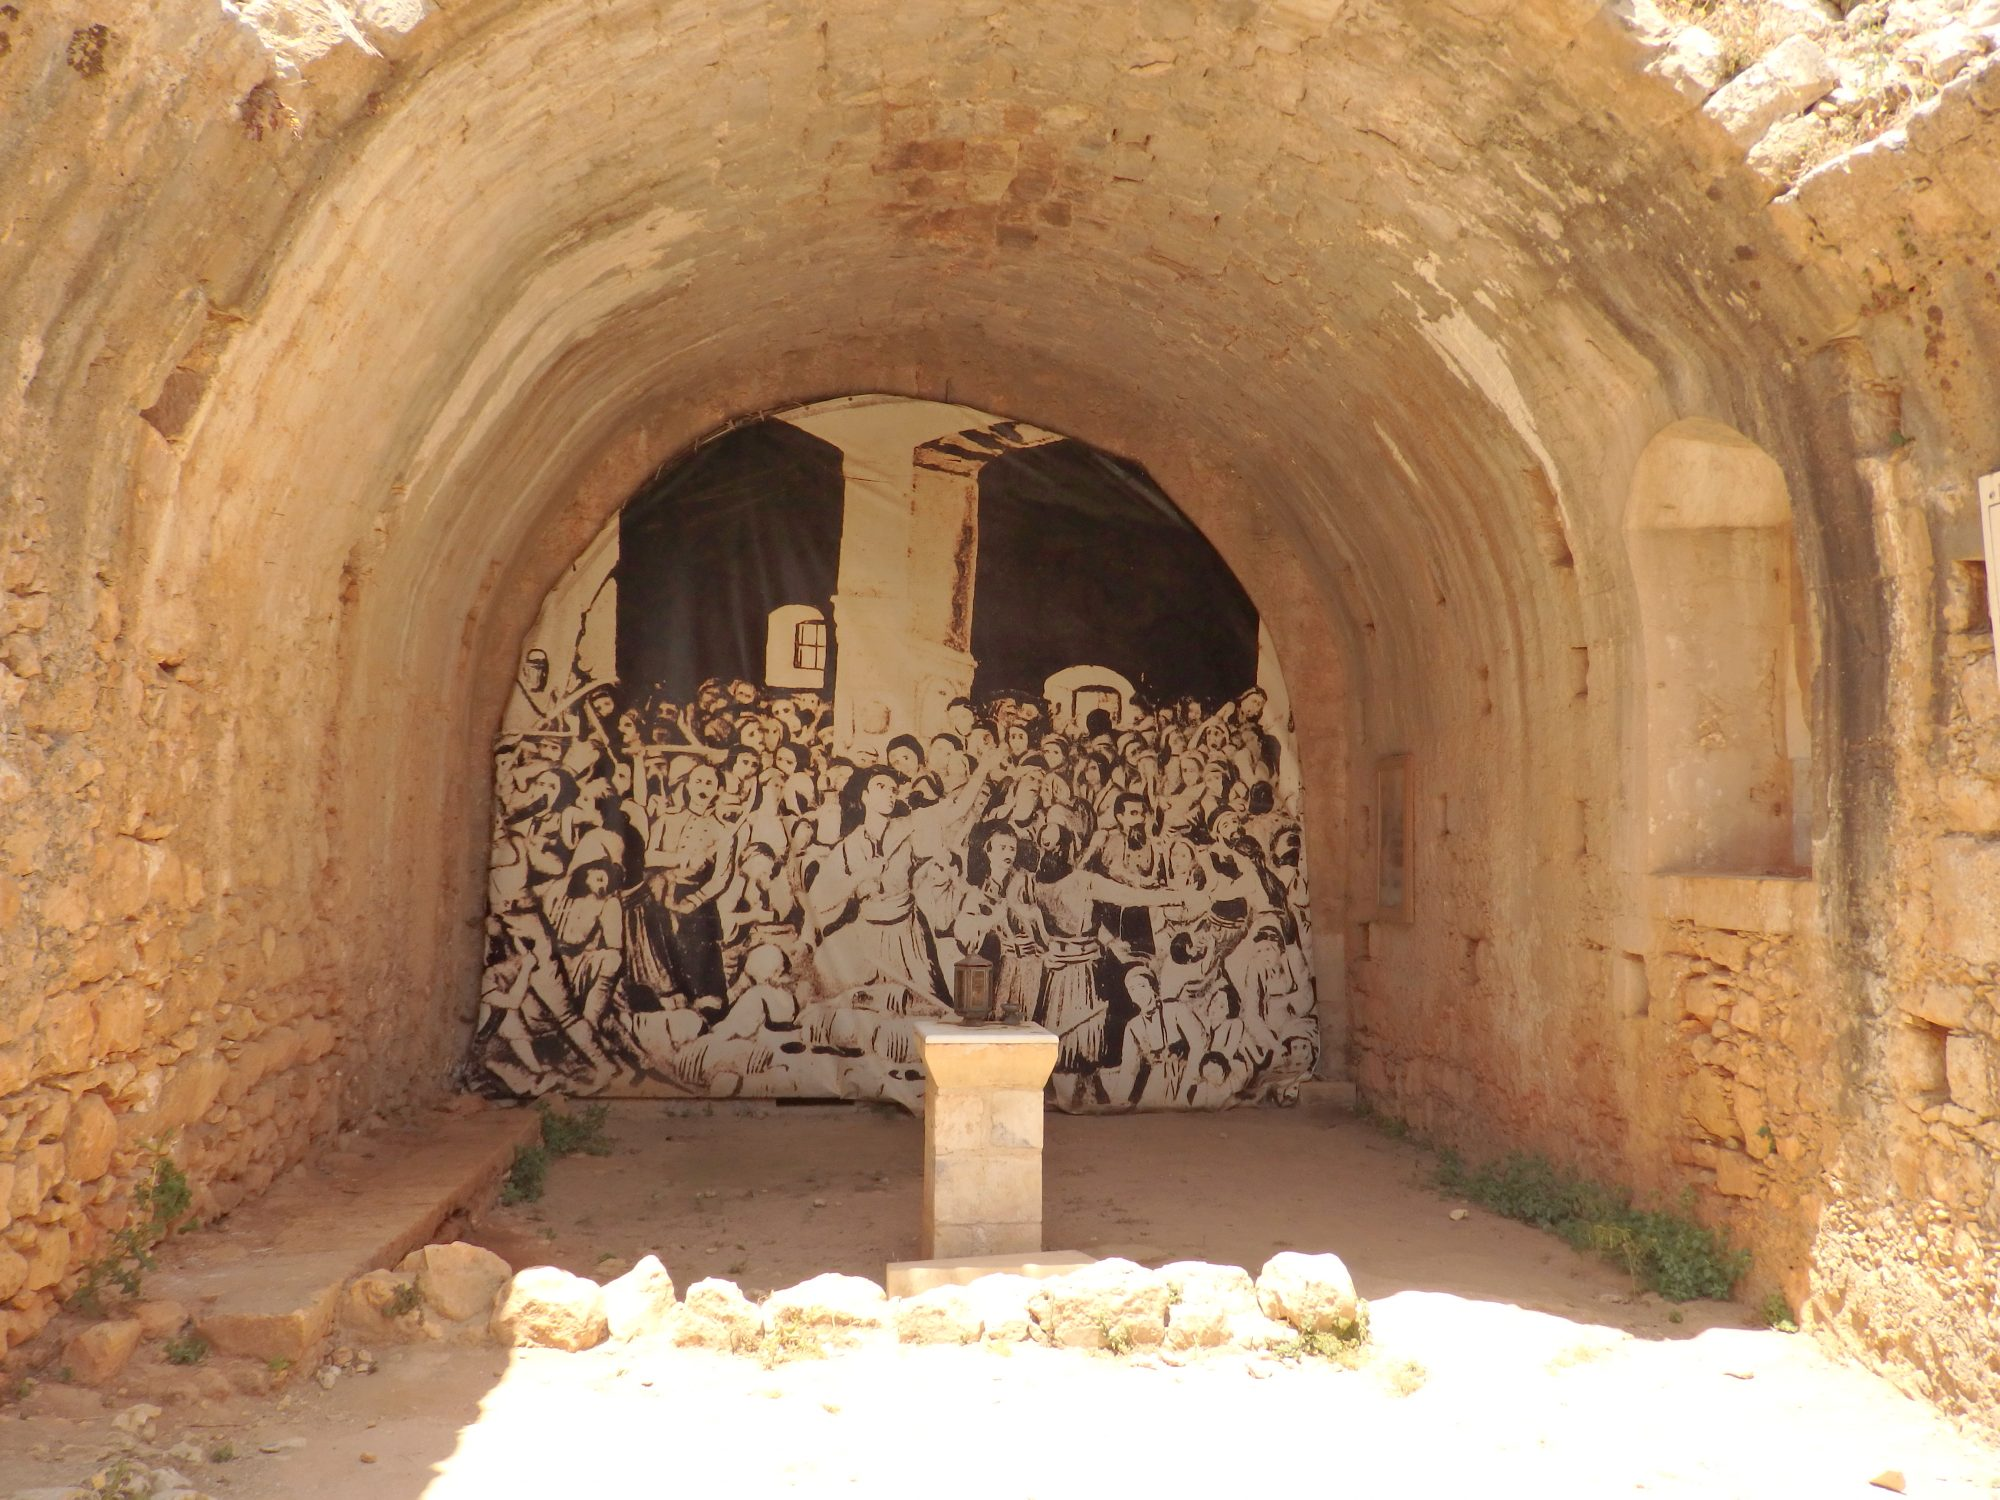 The intact end of the powder room at Arkadi is painted as a reminder of the tragedy that happened there.